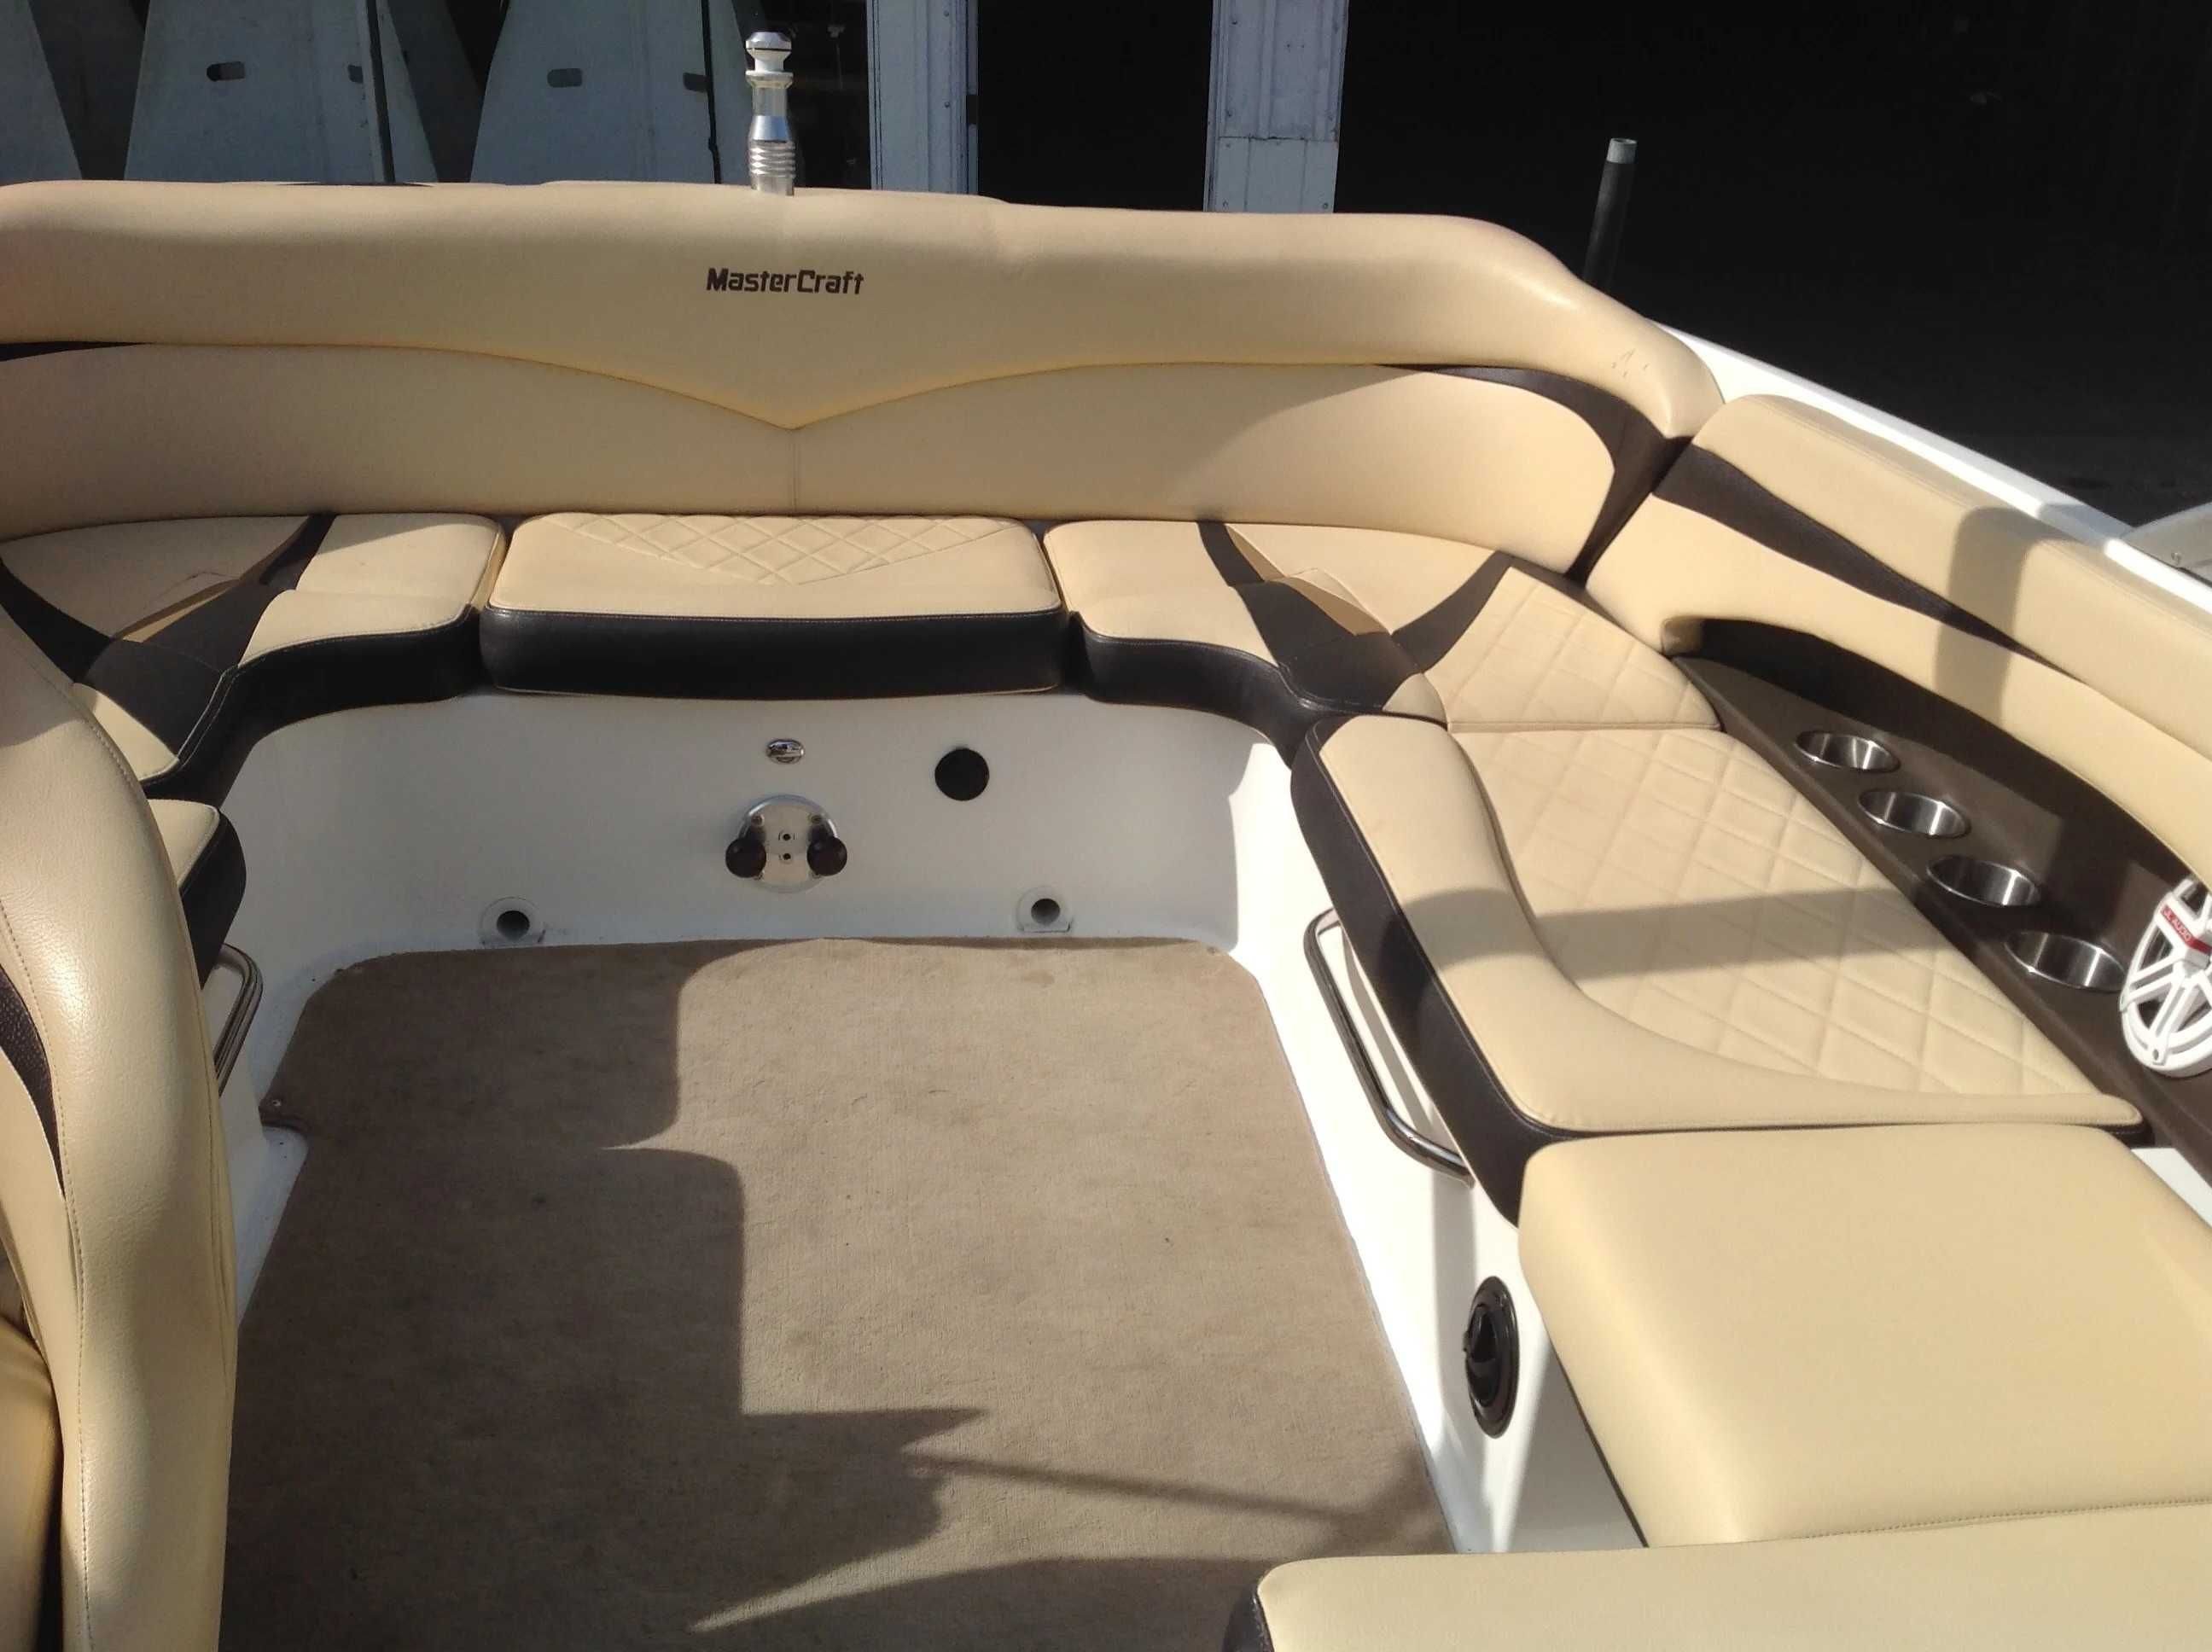 2010 Mastercraft boat for sale, model of the boat is Maristar 235 & Image # 9 of 16